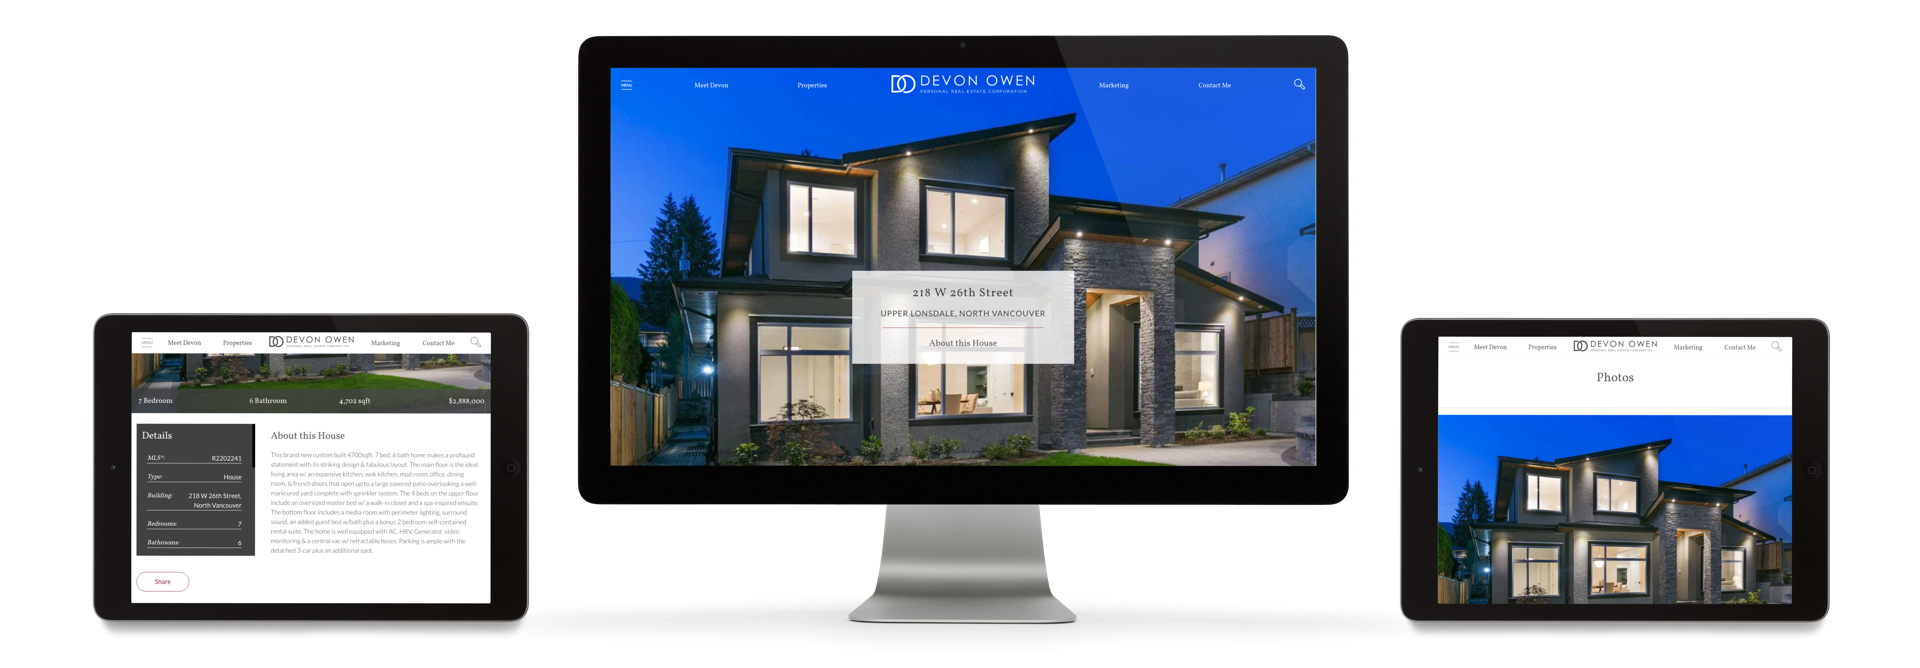 Featured Listings, Devon's Own Real Estate Listings as well as full MLS® Listing Results Across Vancouver